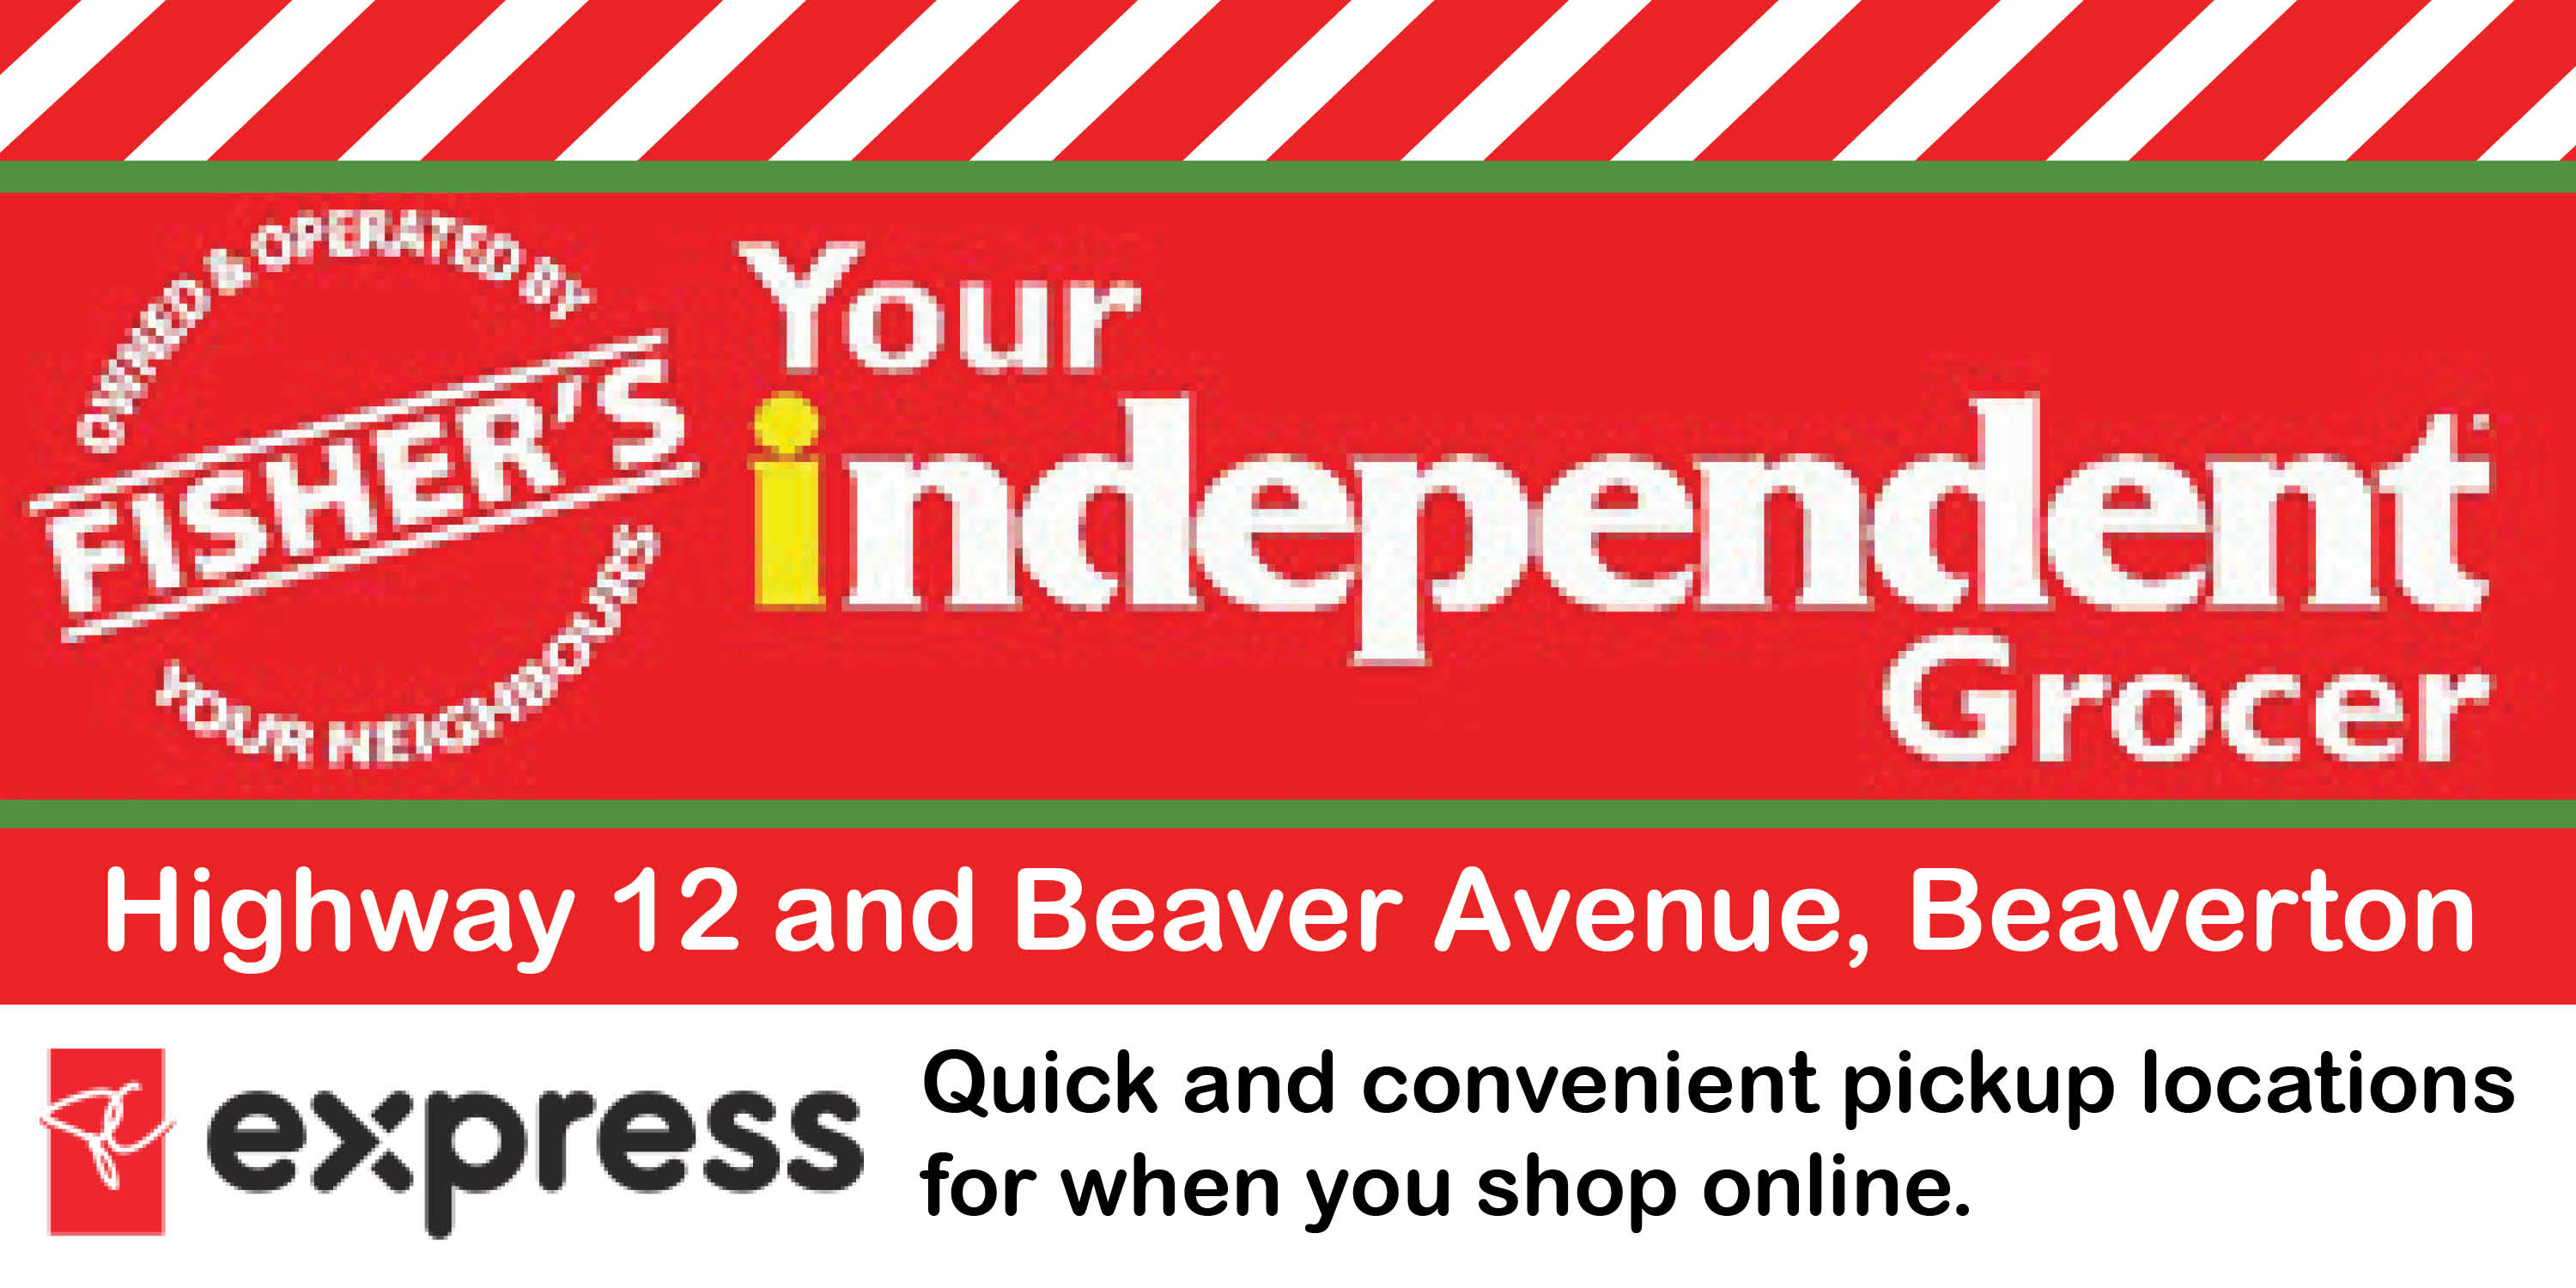 Fisher's Your Independent Grocer ad